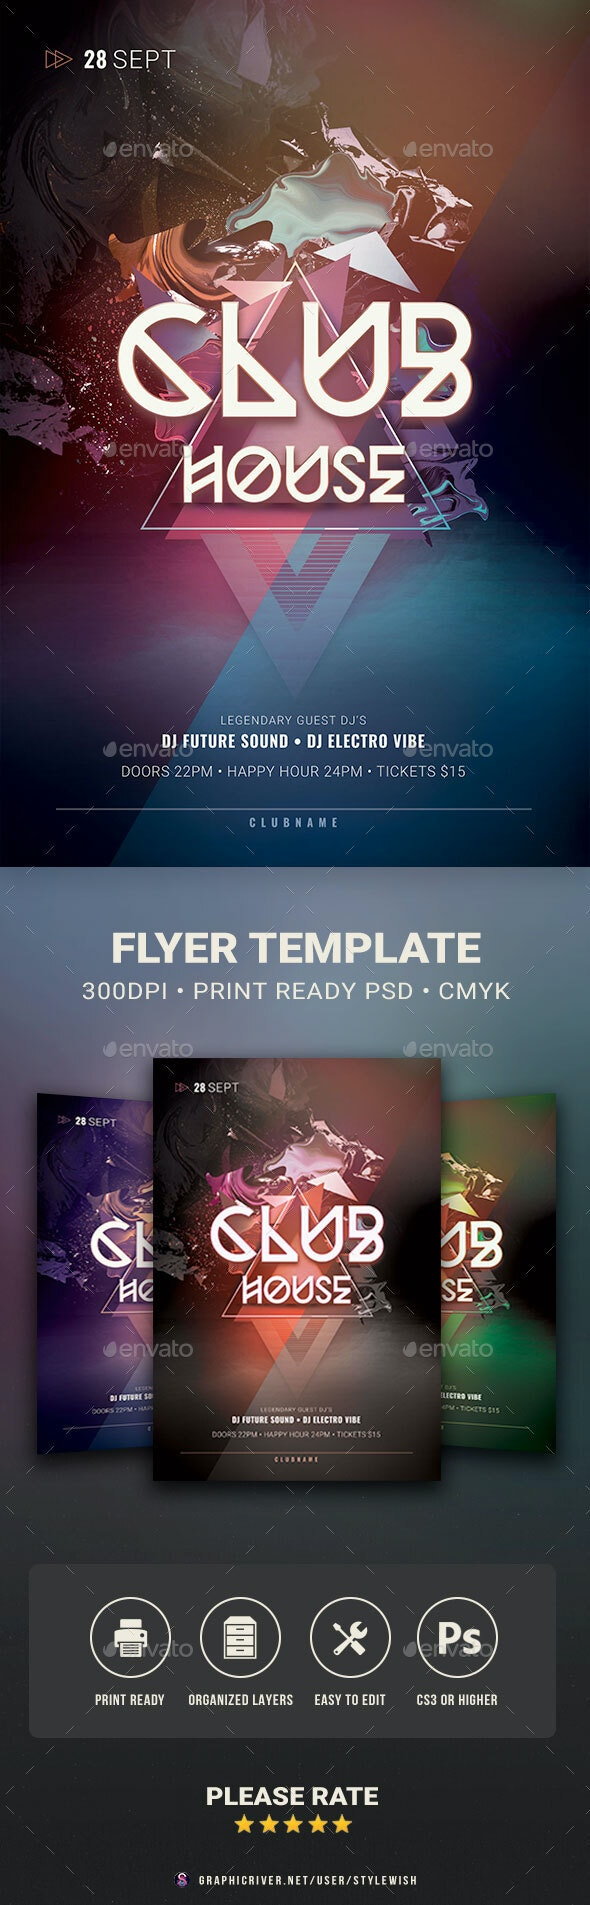 Club House Flyer - Clubs & Parties Events